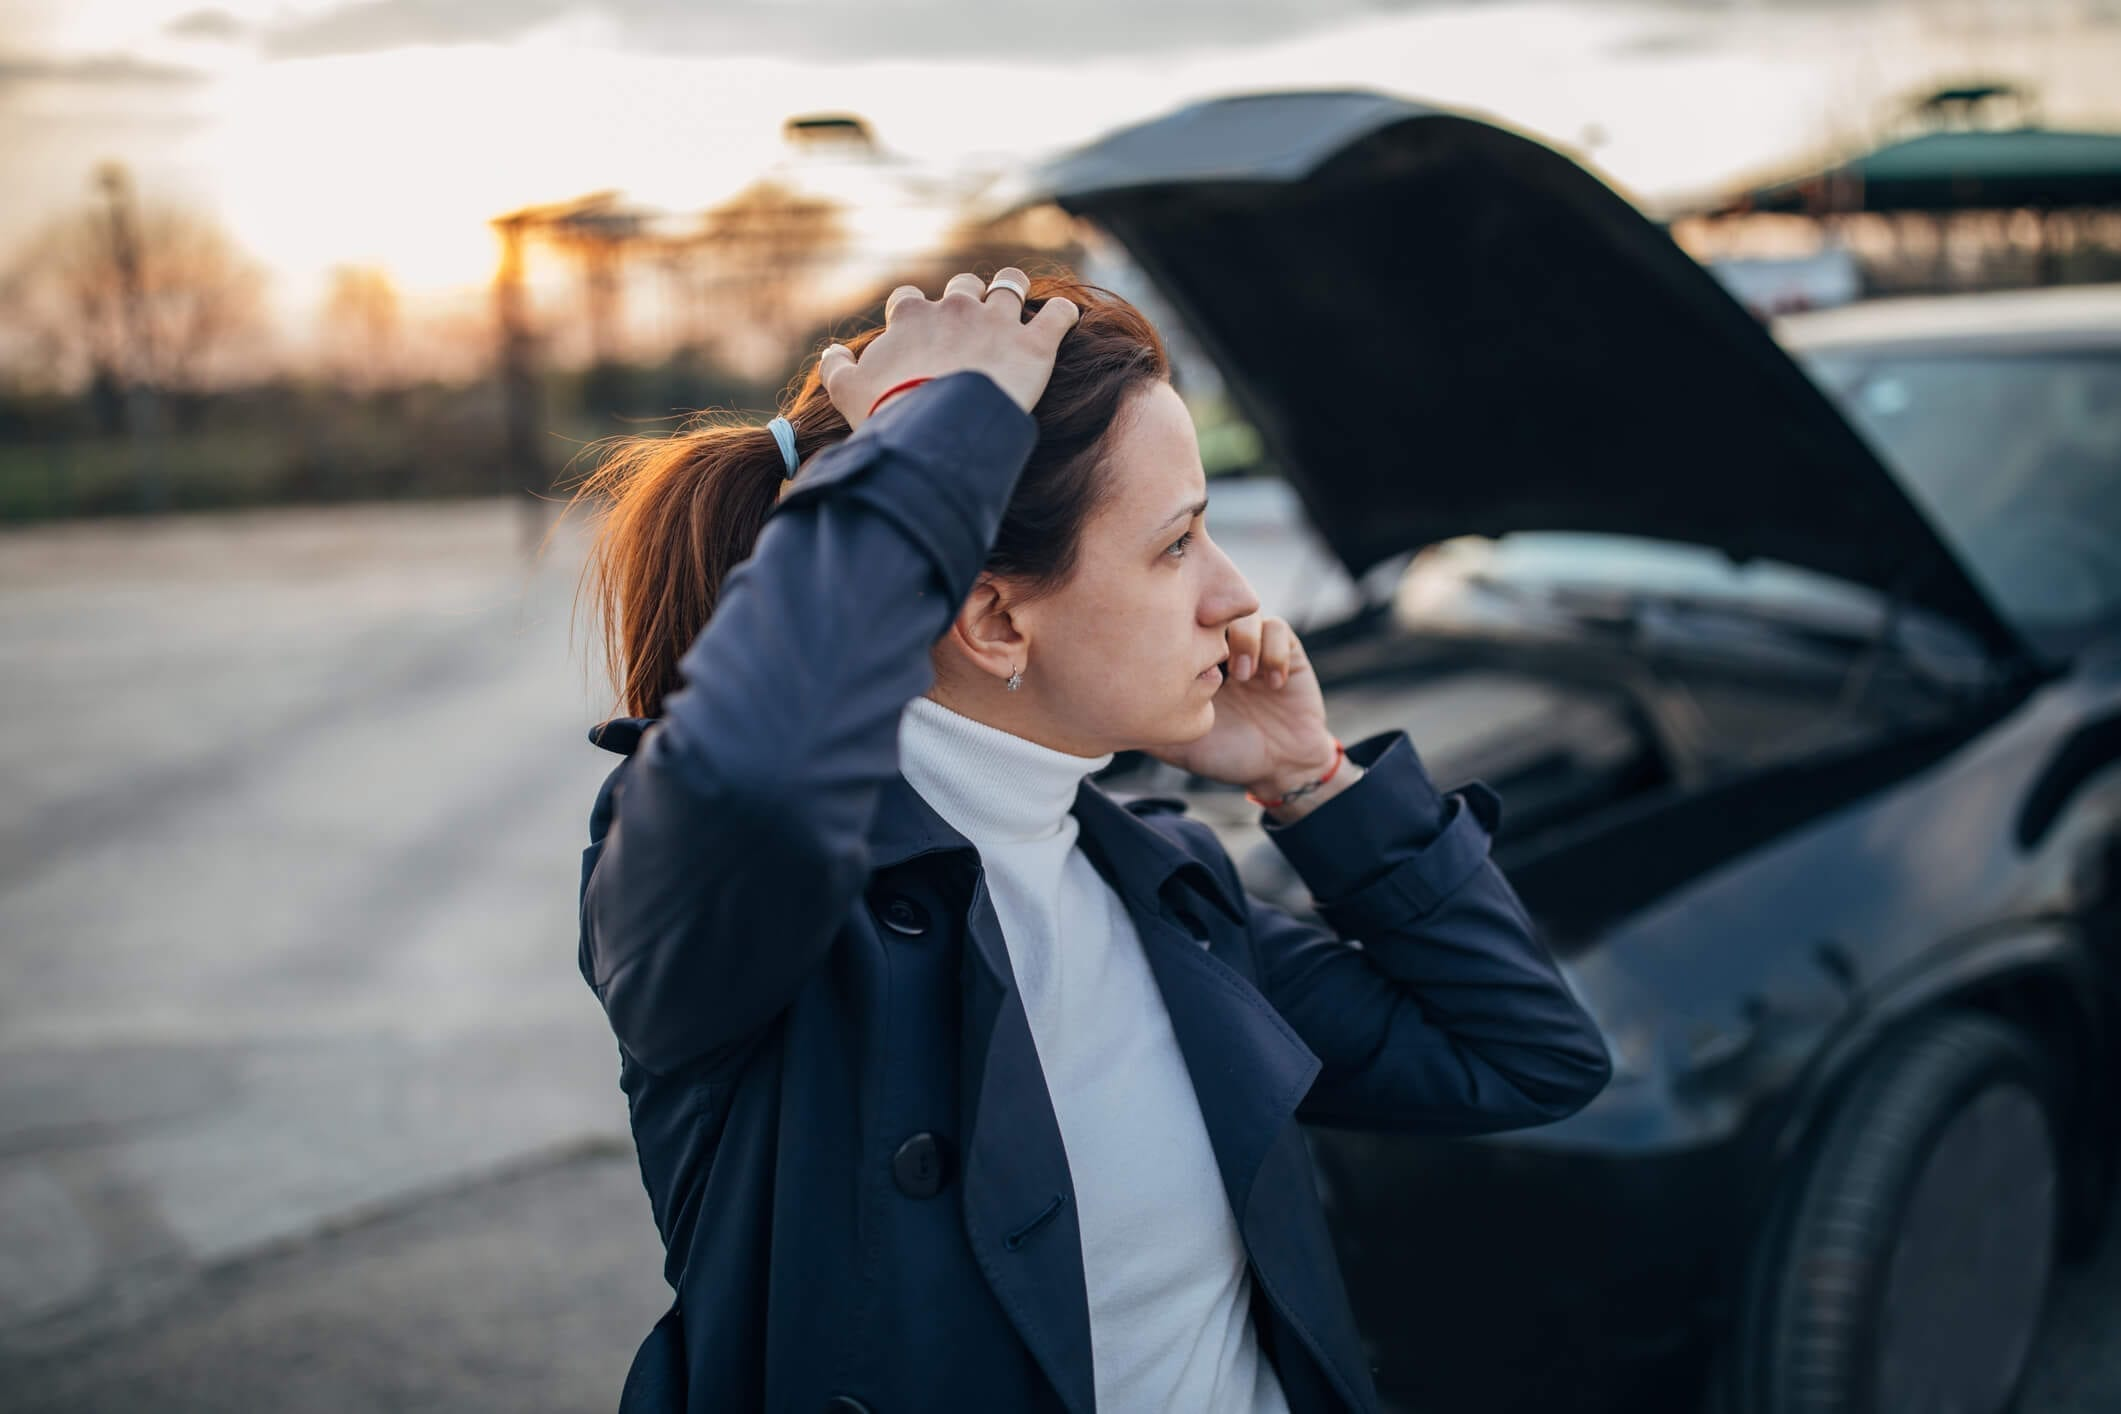 Stressed woman with car